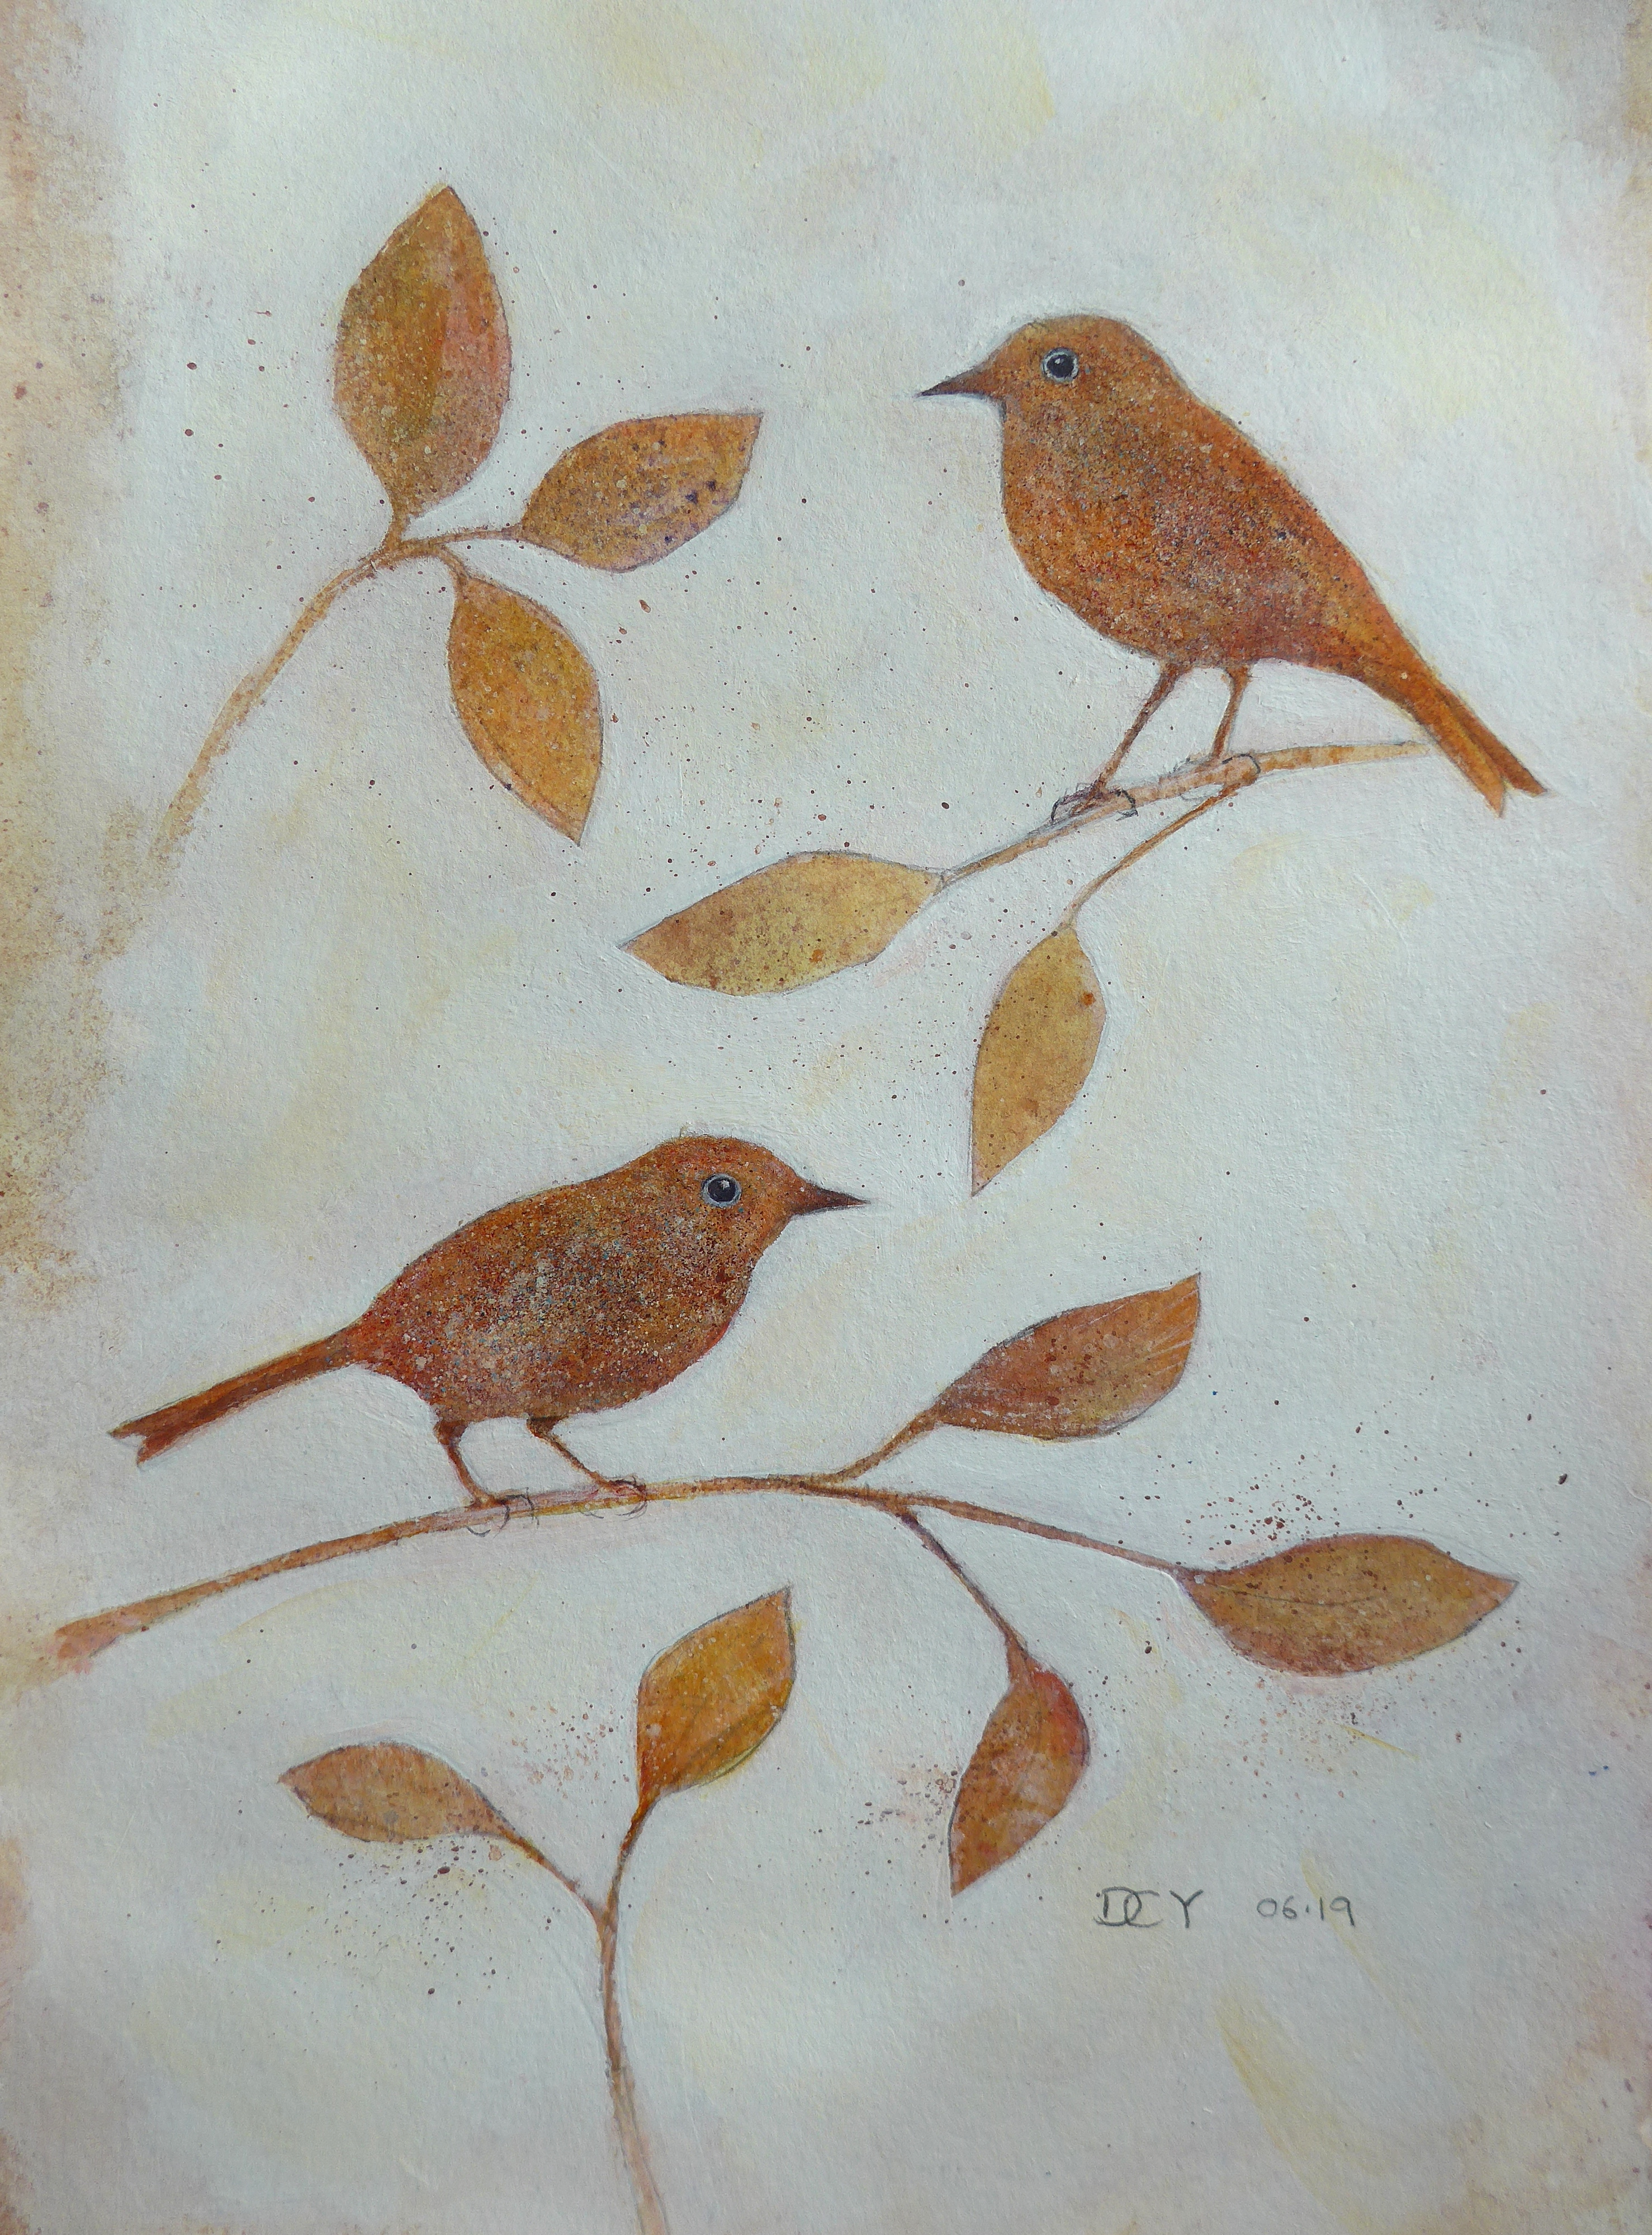 Painting showing spatter paint silhouettes of birds and flowers by artist Diane Young